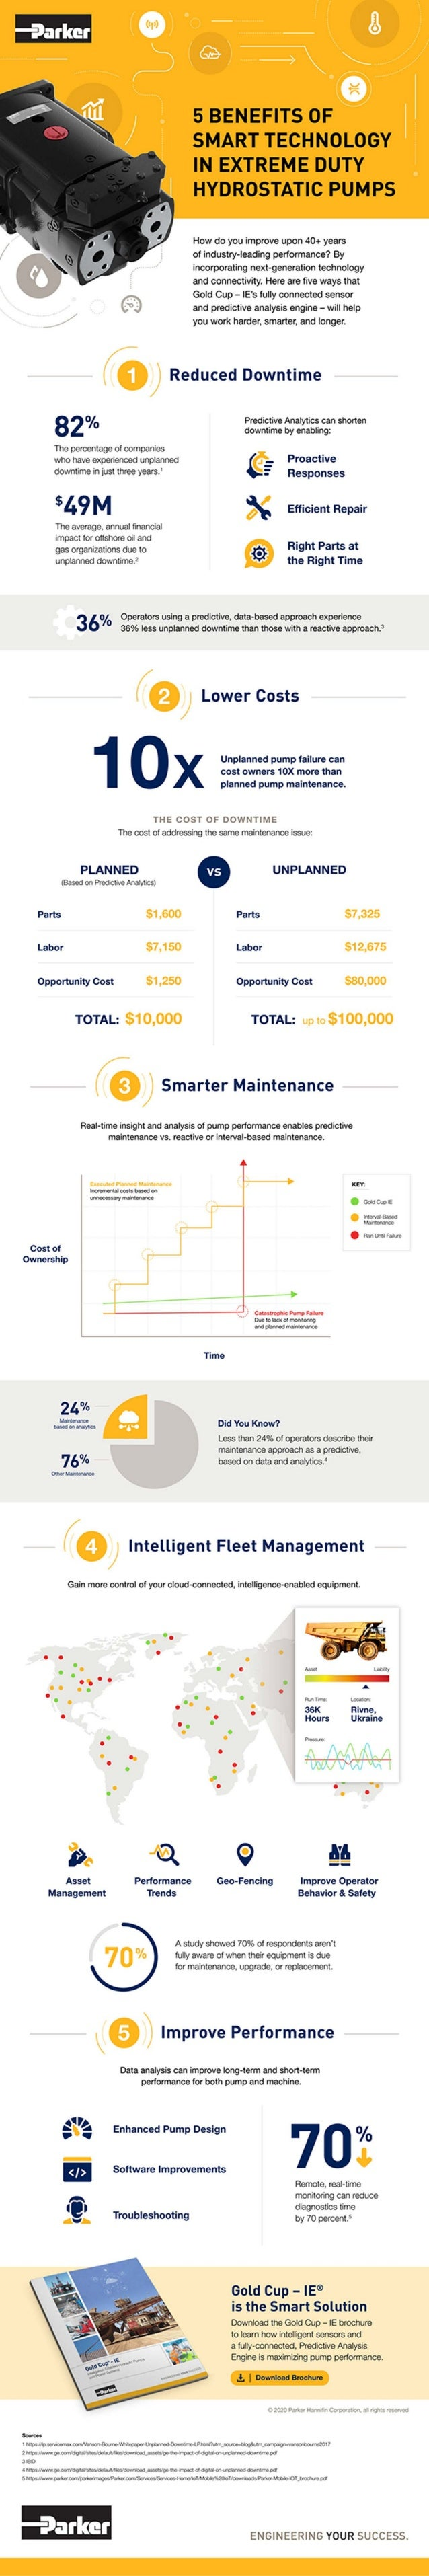 5 Benefits of Smart Technology in Extreme Duty Hydrostatic Pumps infographic